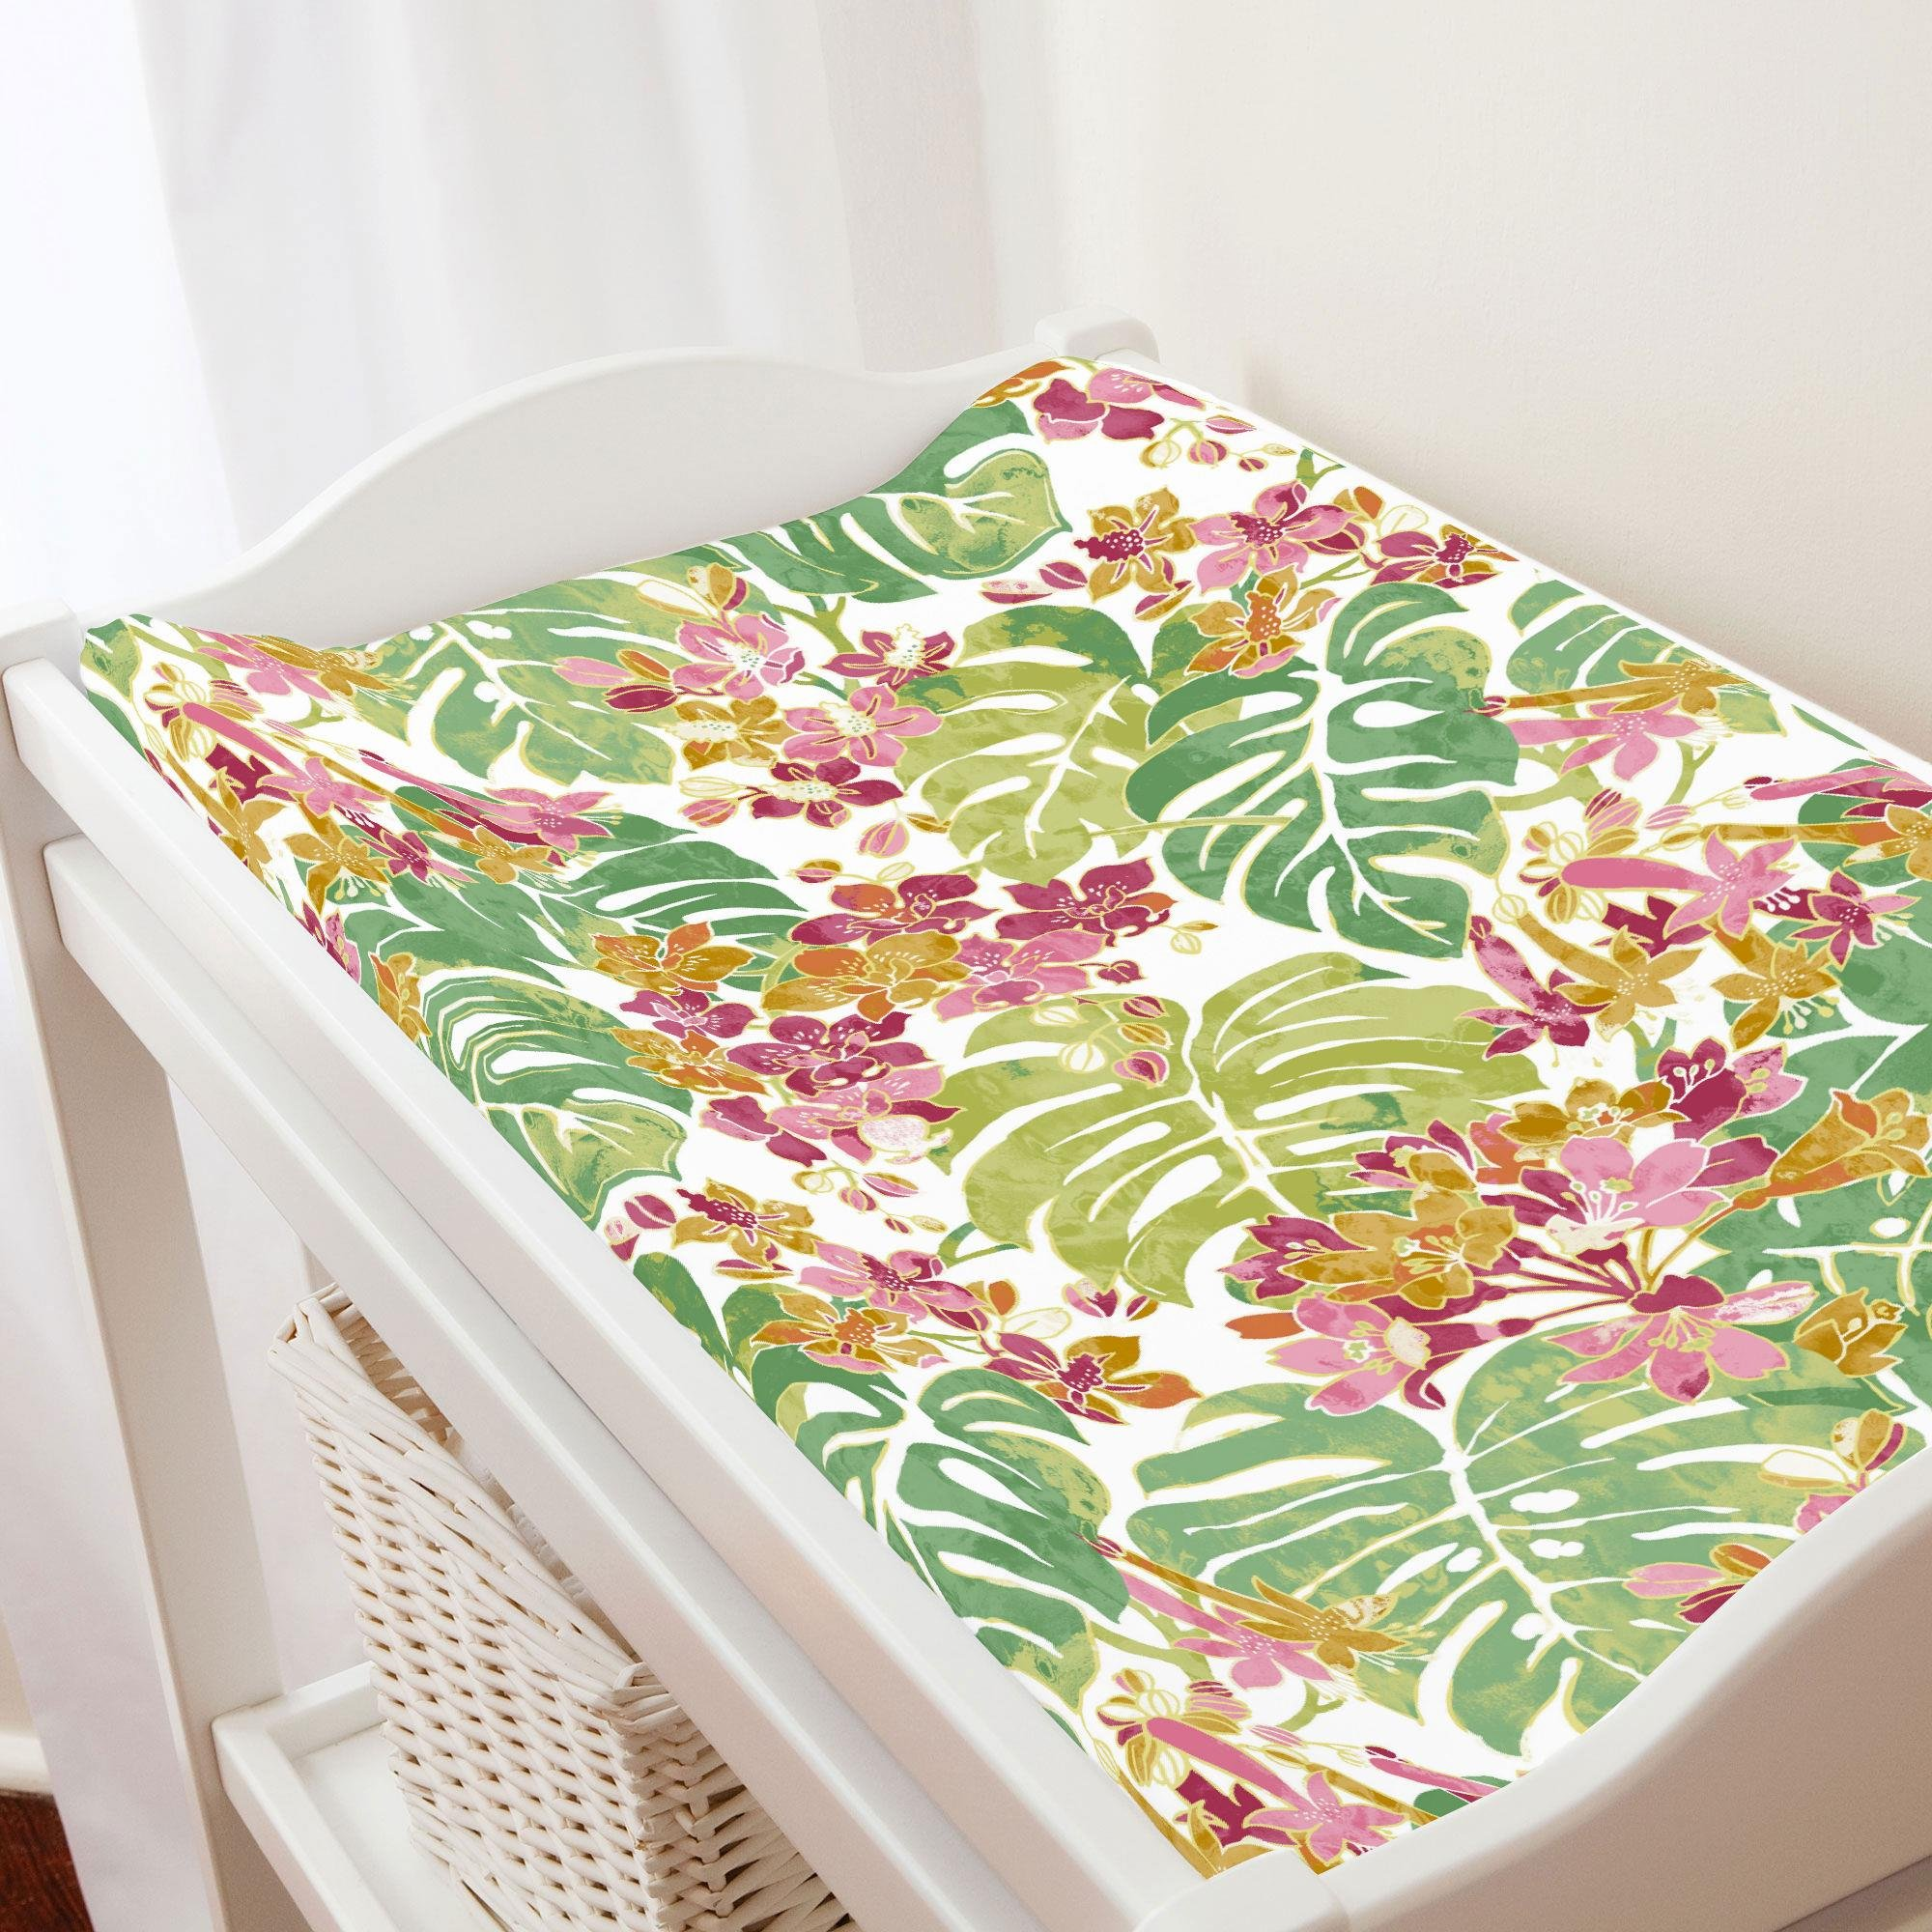 Carousel Designs Pink and Green Tropical Changing Pad Cover - Organic 100% Cotton Change Pad Cover - Made in The USA